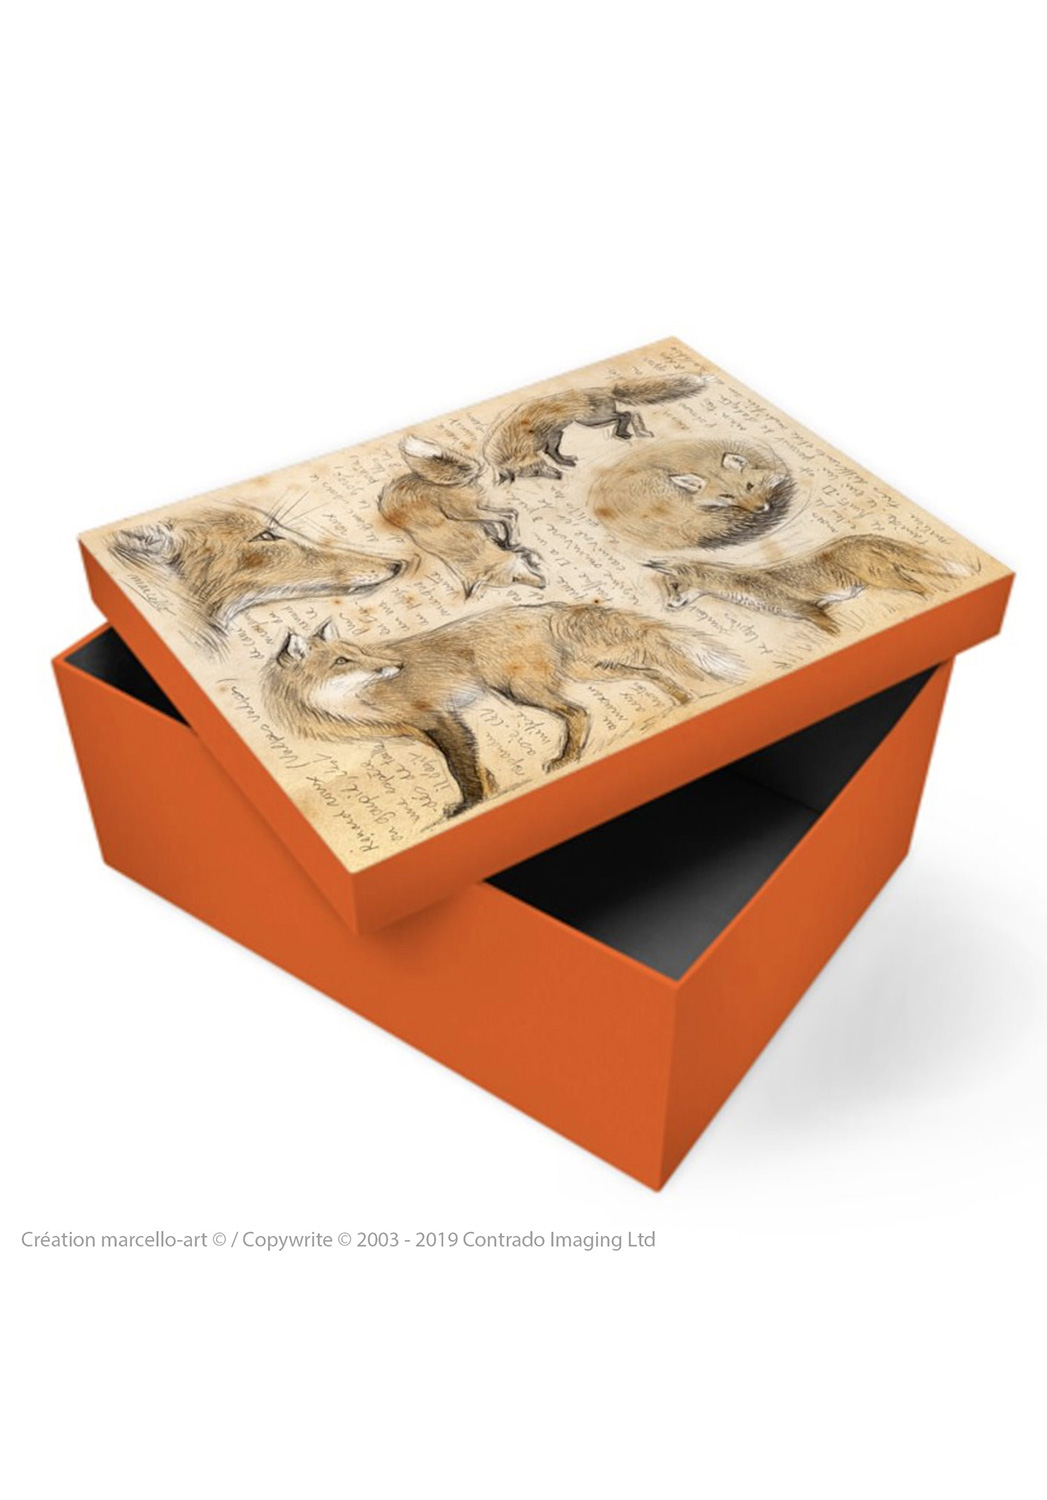 Marcello-art: Decoration accessoiries Souvenir box 336 red fox